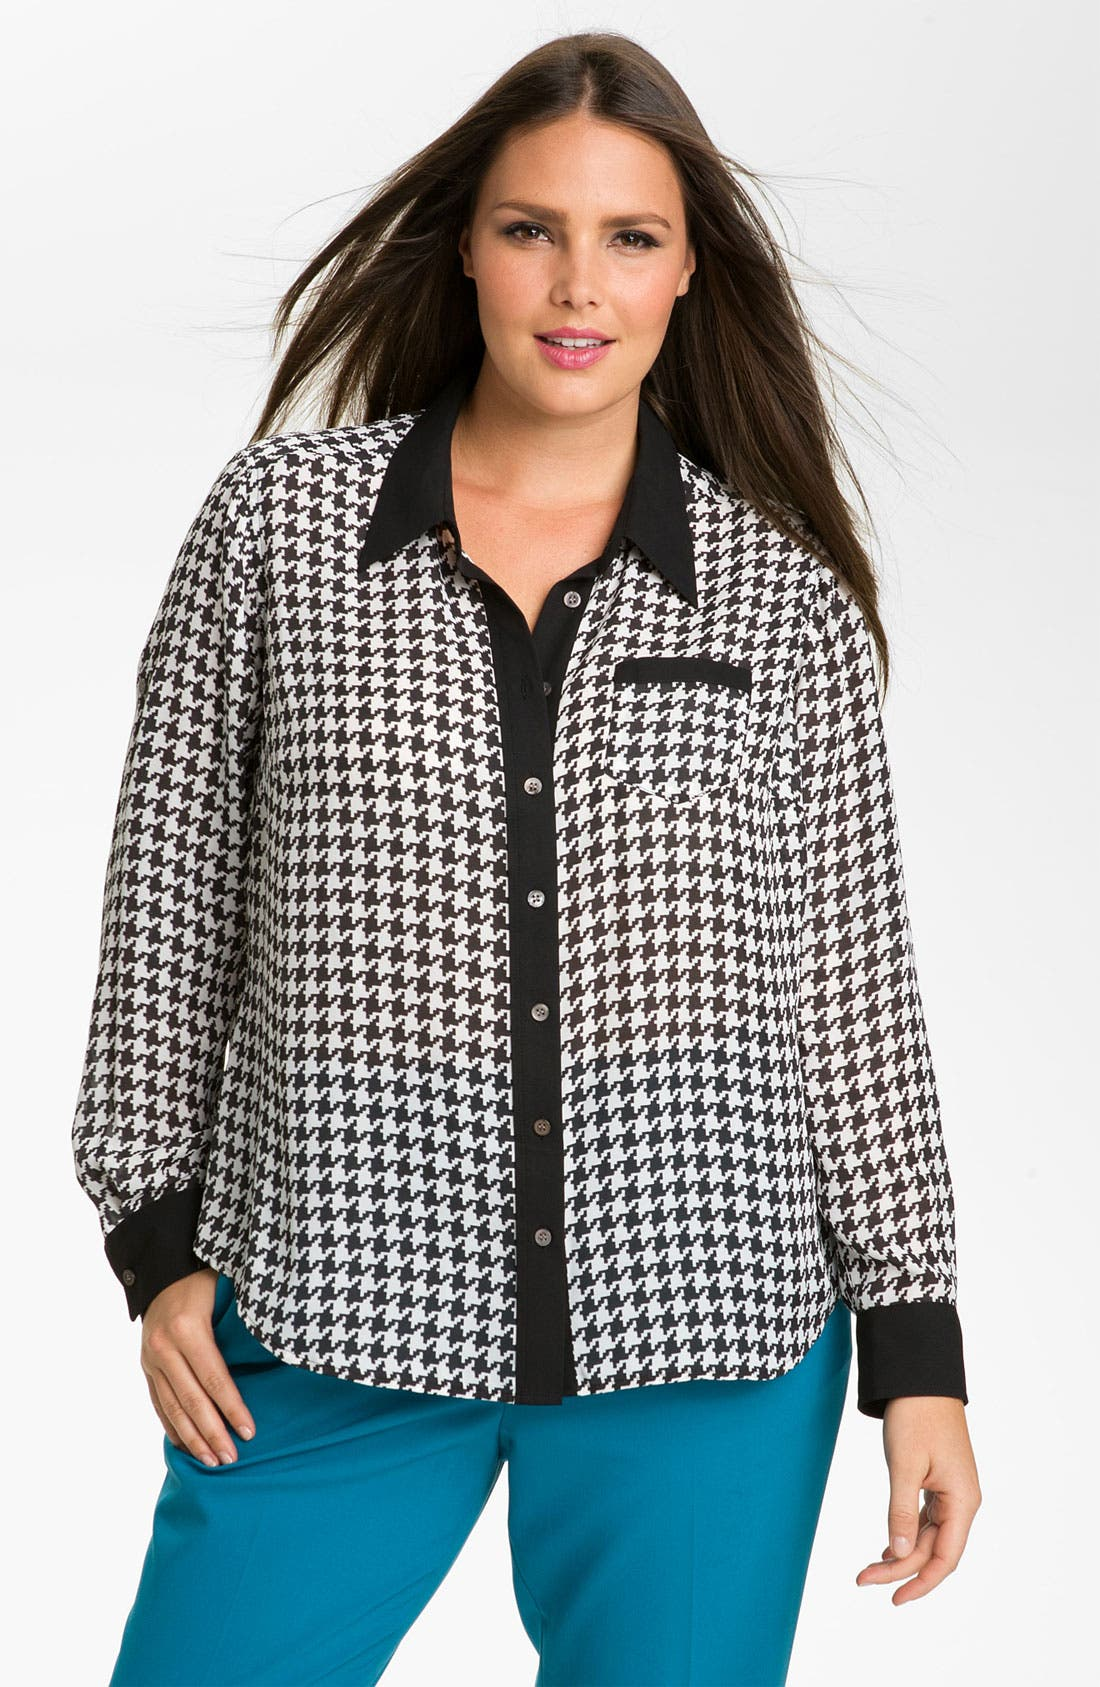 Alternate Image 1 Selected - Vince Camuto Contrast Trim Houndstooth Blouse (Plus)